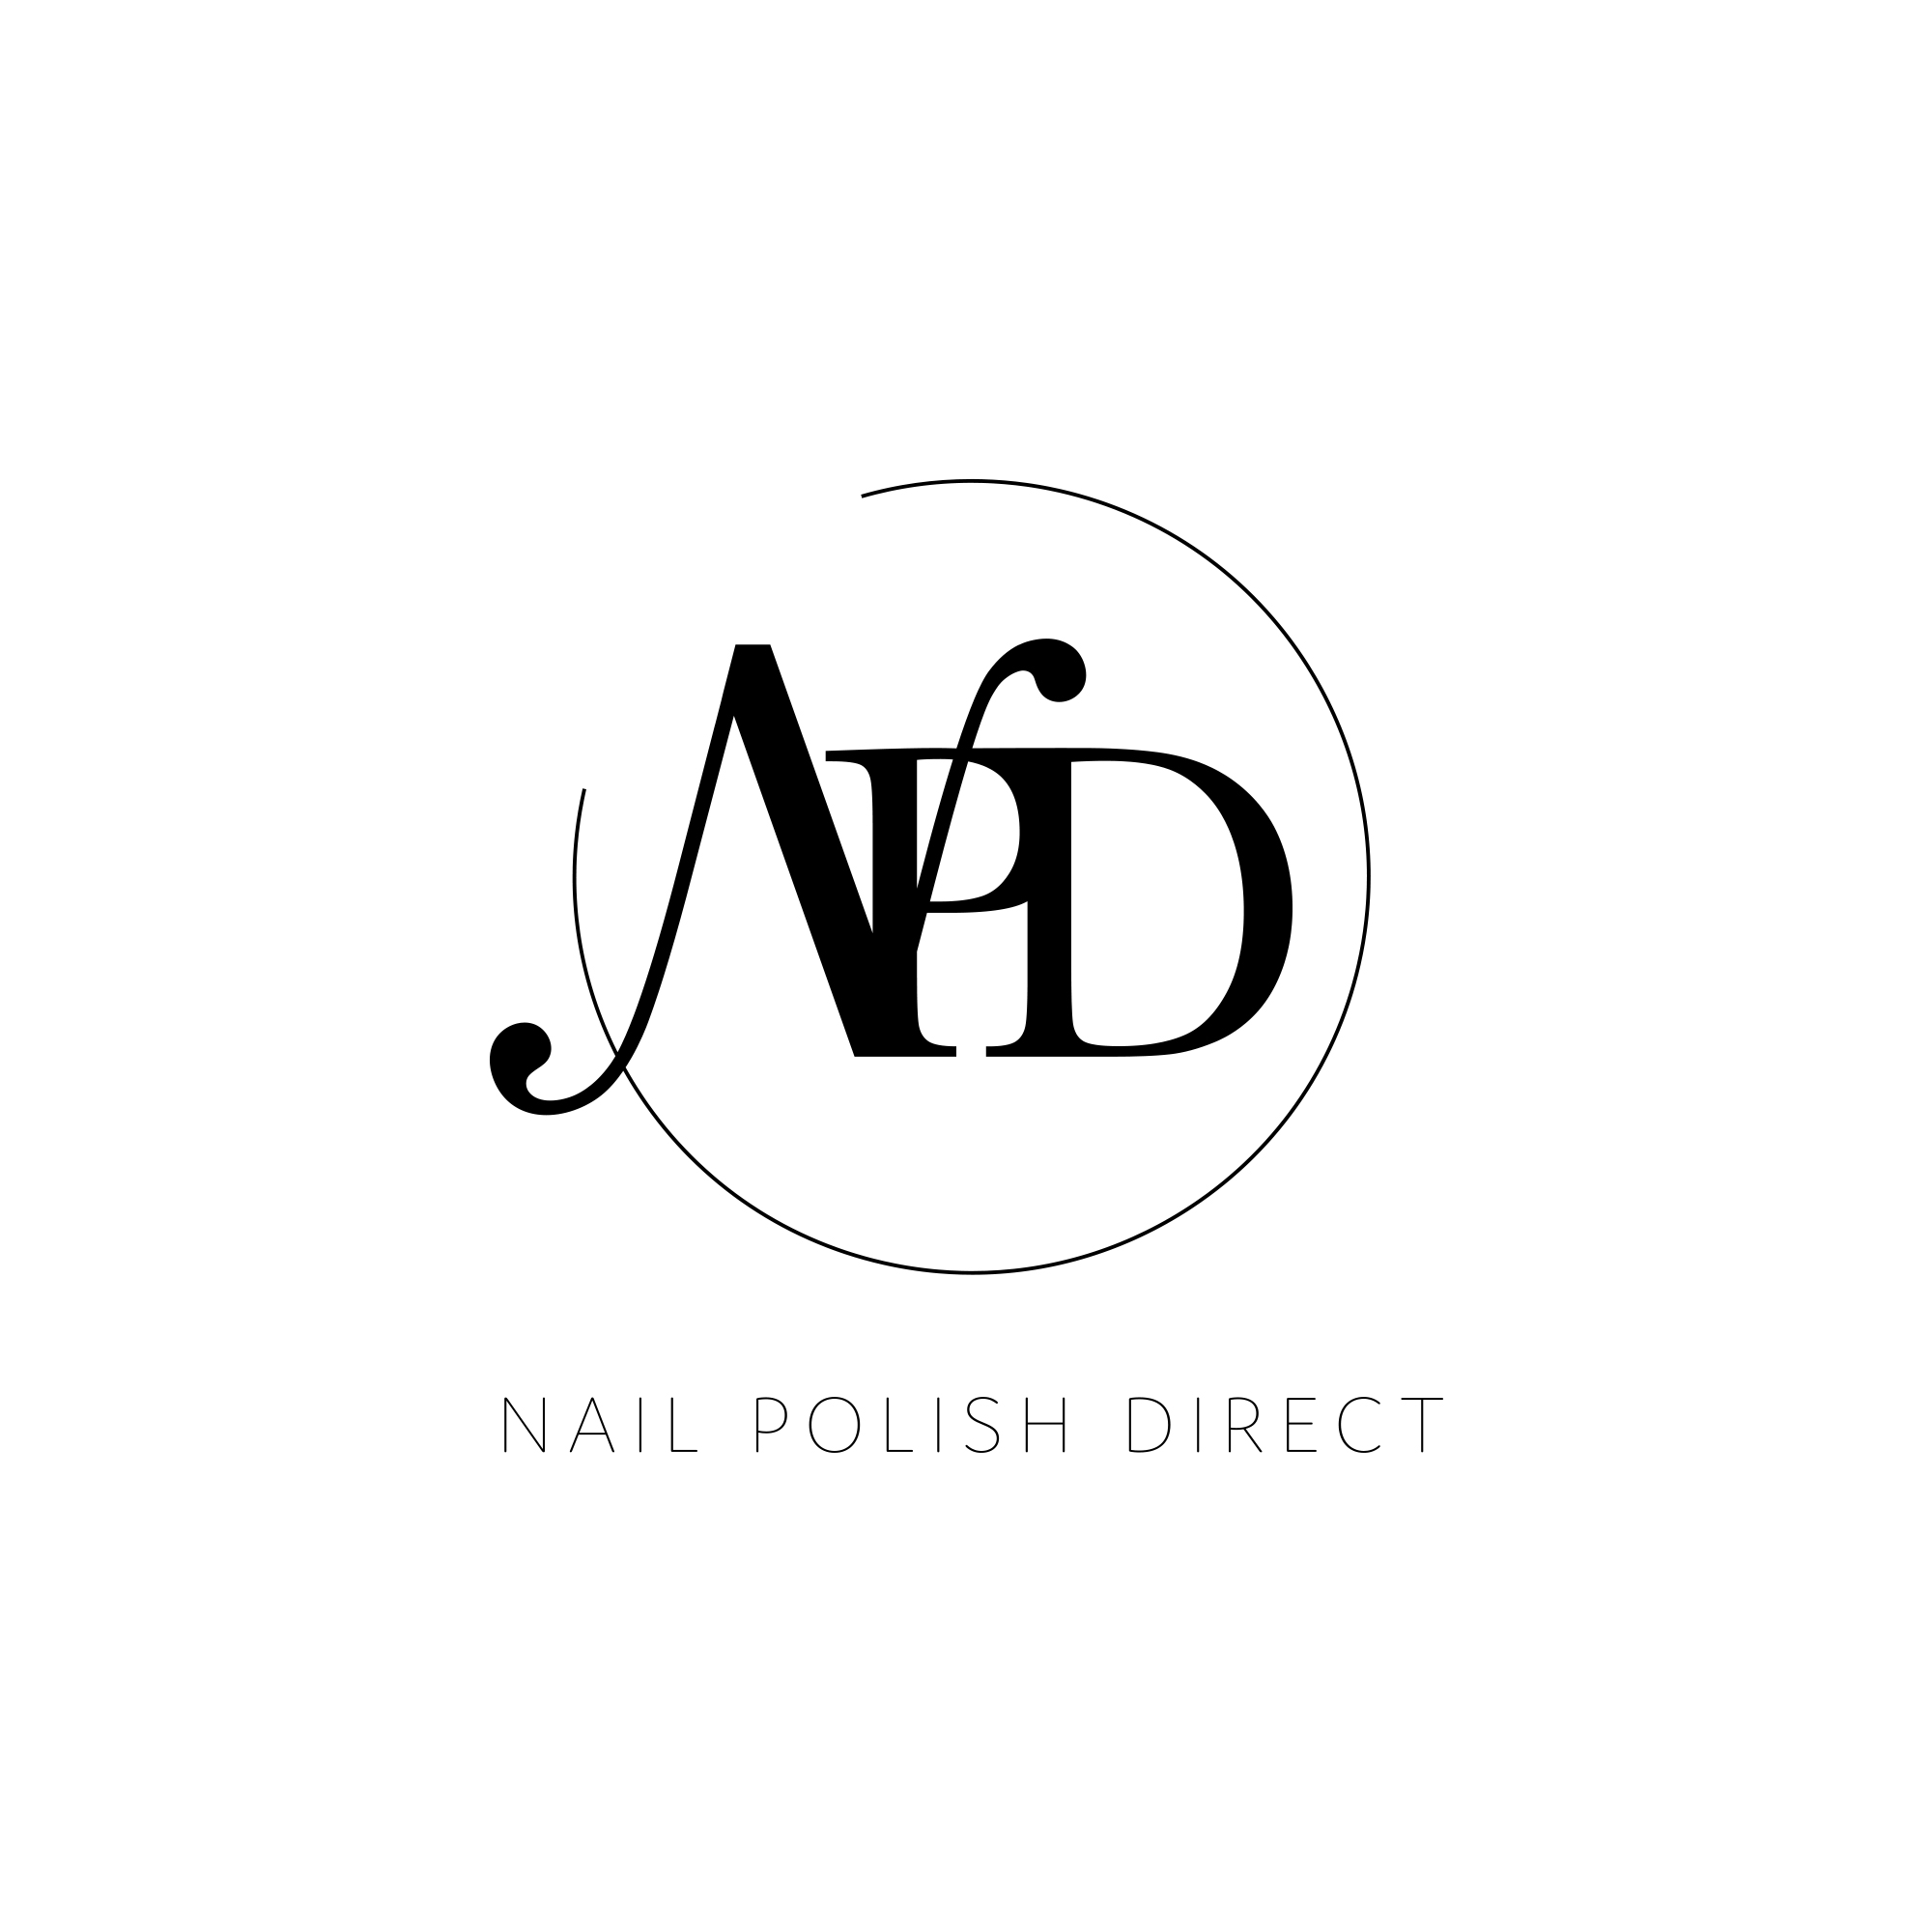 OPI Nail Polish Russian Navy & Polka.com Collection - Fit To Be Tied Duo Set